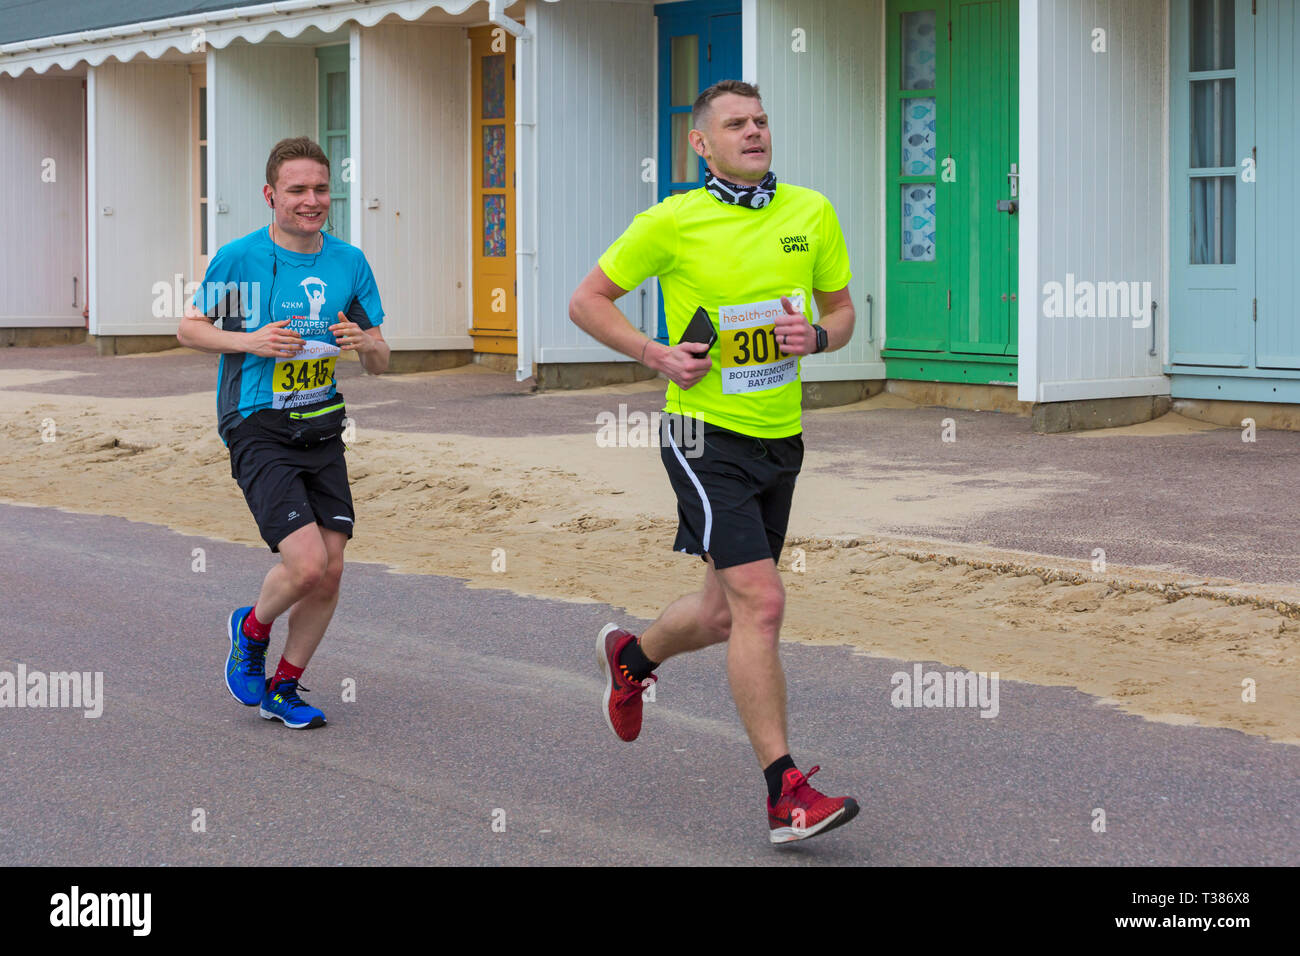 Bournemouth, Dorset, UK. 7th April 2019. Runners take part in the Bournemouth Bay Run on the theme of fun fairy-tale along Bournemouth's sea front – half marathon runners. Participants run to raise vital funds for the British Heart Foundation charity to fight against heart disease. A dry day with hazy sunshine.  Credit: Carolyn Jenkins/Alamy Live News - Stock Image